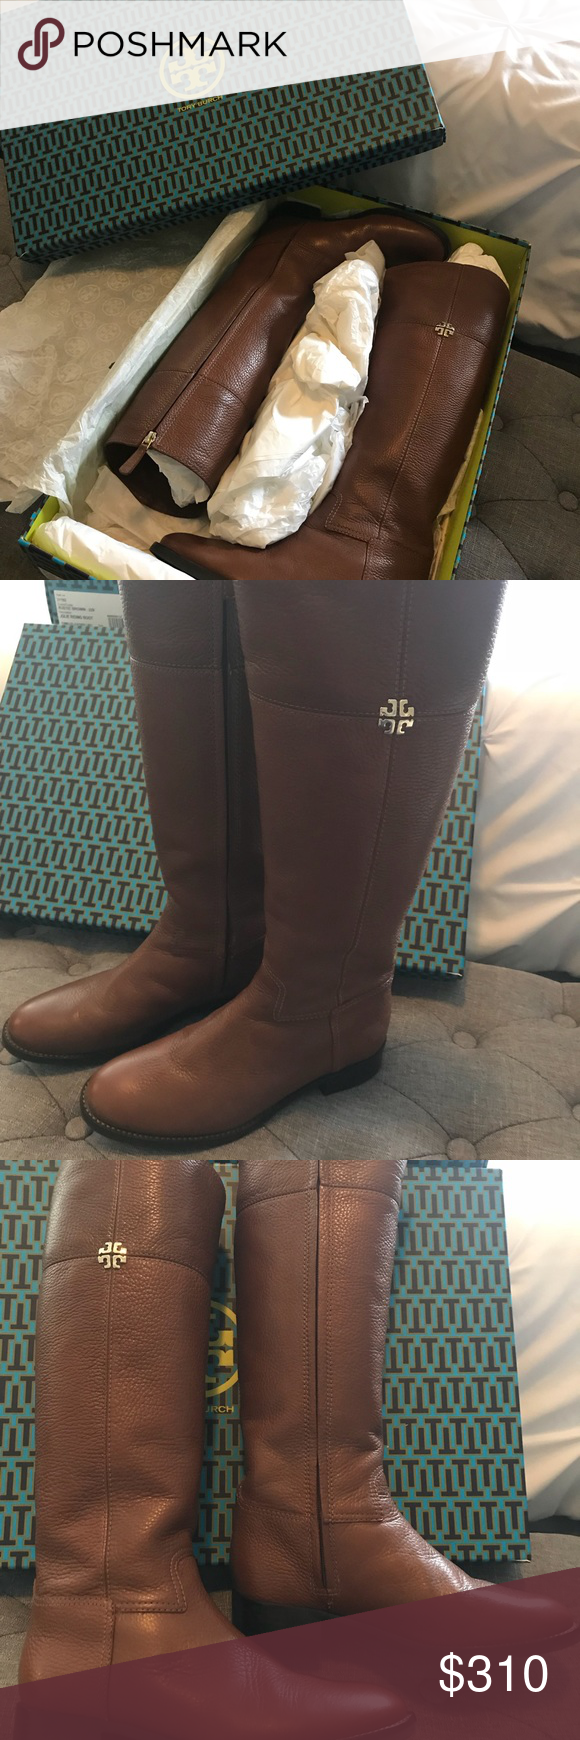 e60fbc2a6b06 Tory Burch Jolie riding boots. Size 6.5 Beautiful rustic brown Tory Burch  riding boots in excellent condition. Used once and I really love them but  the calf ...